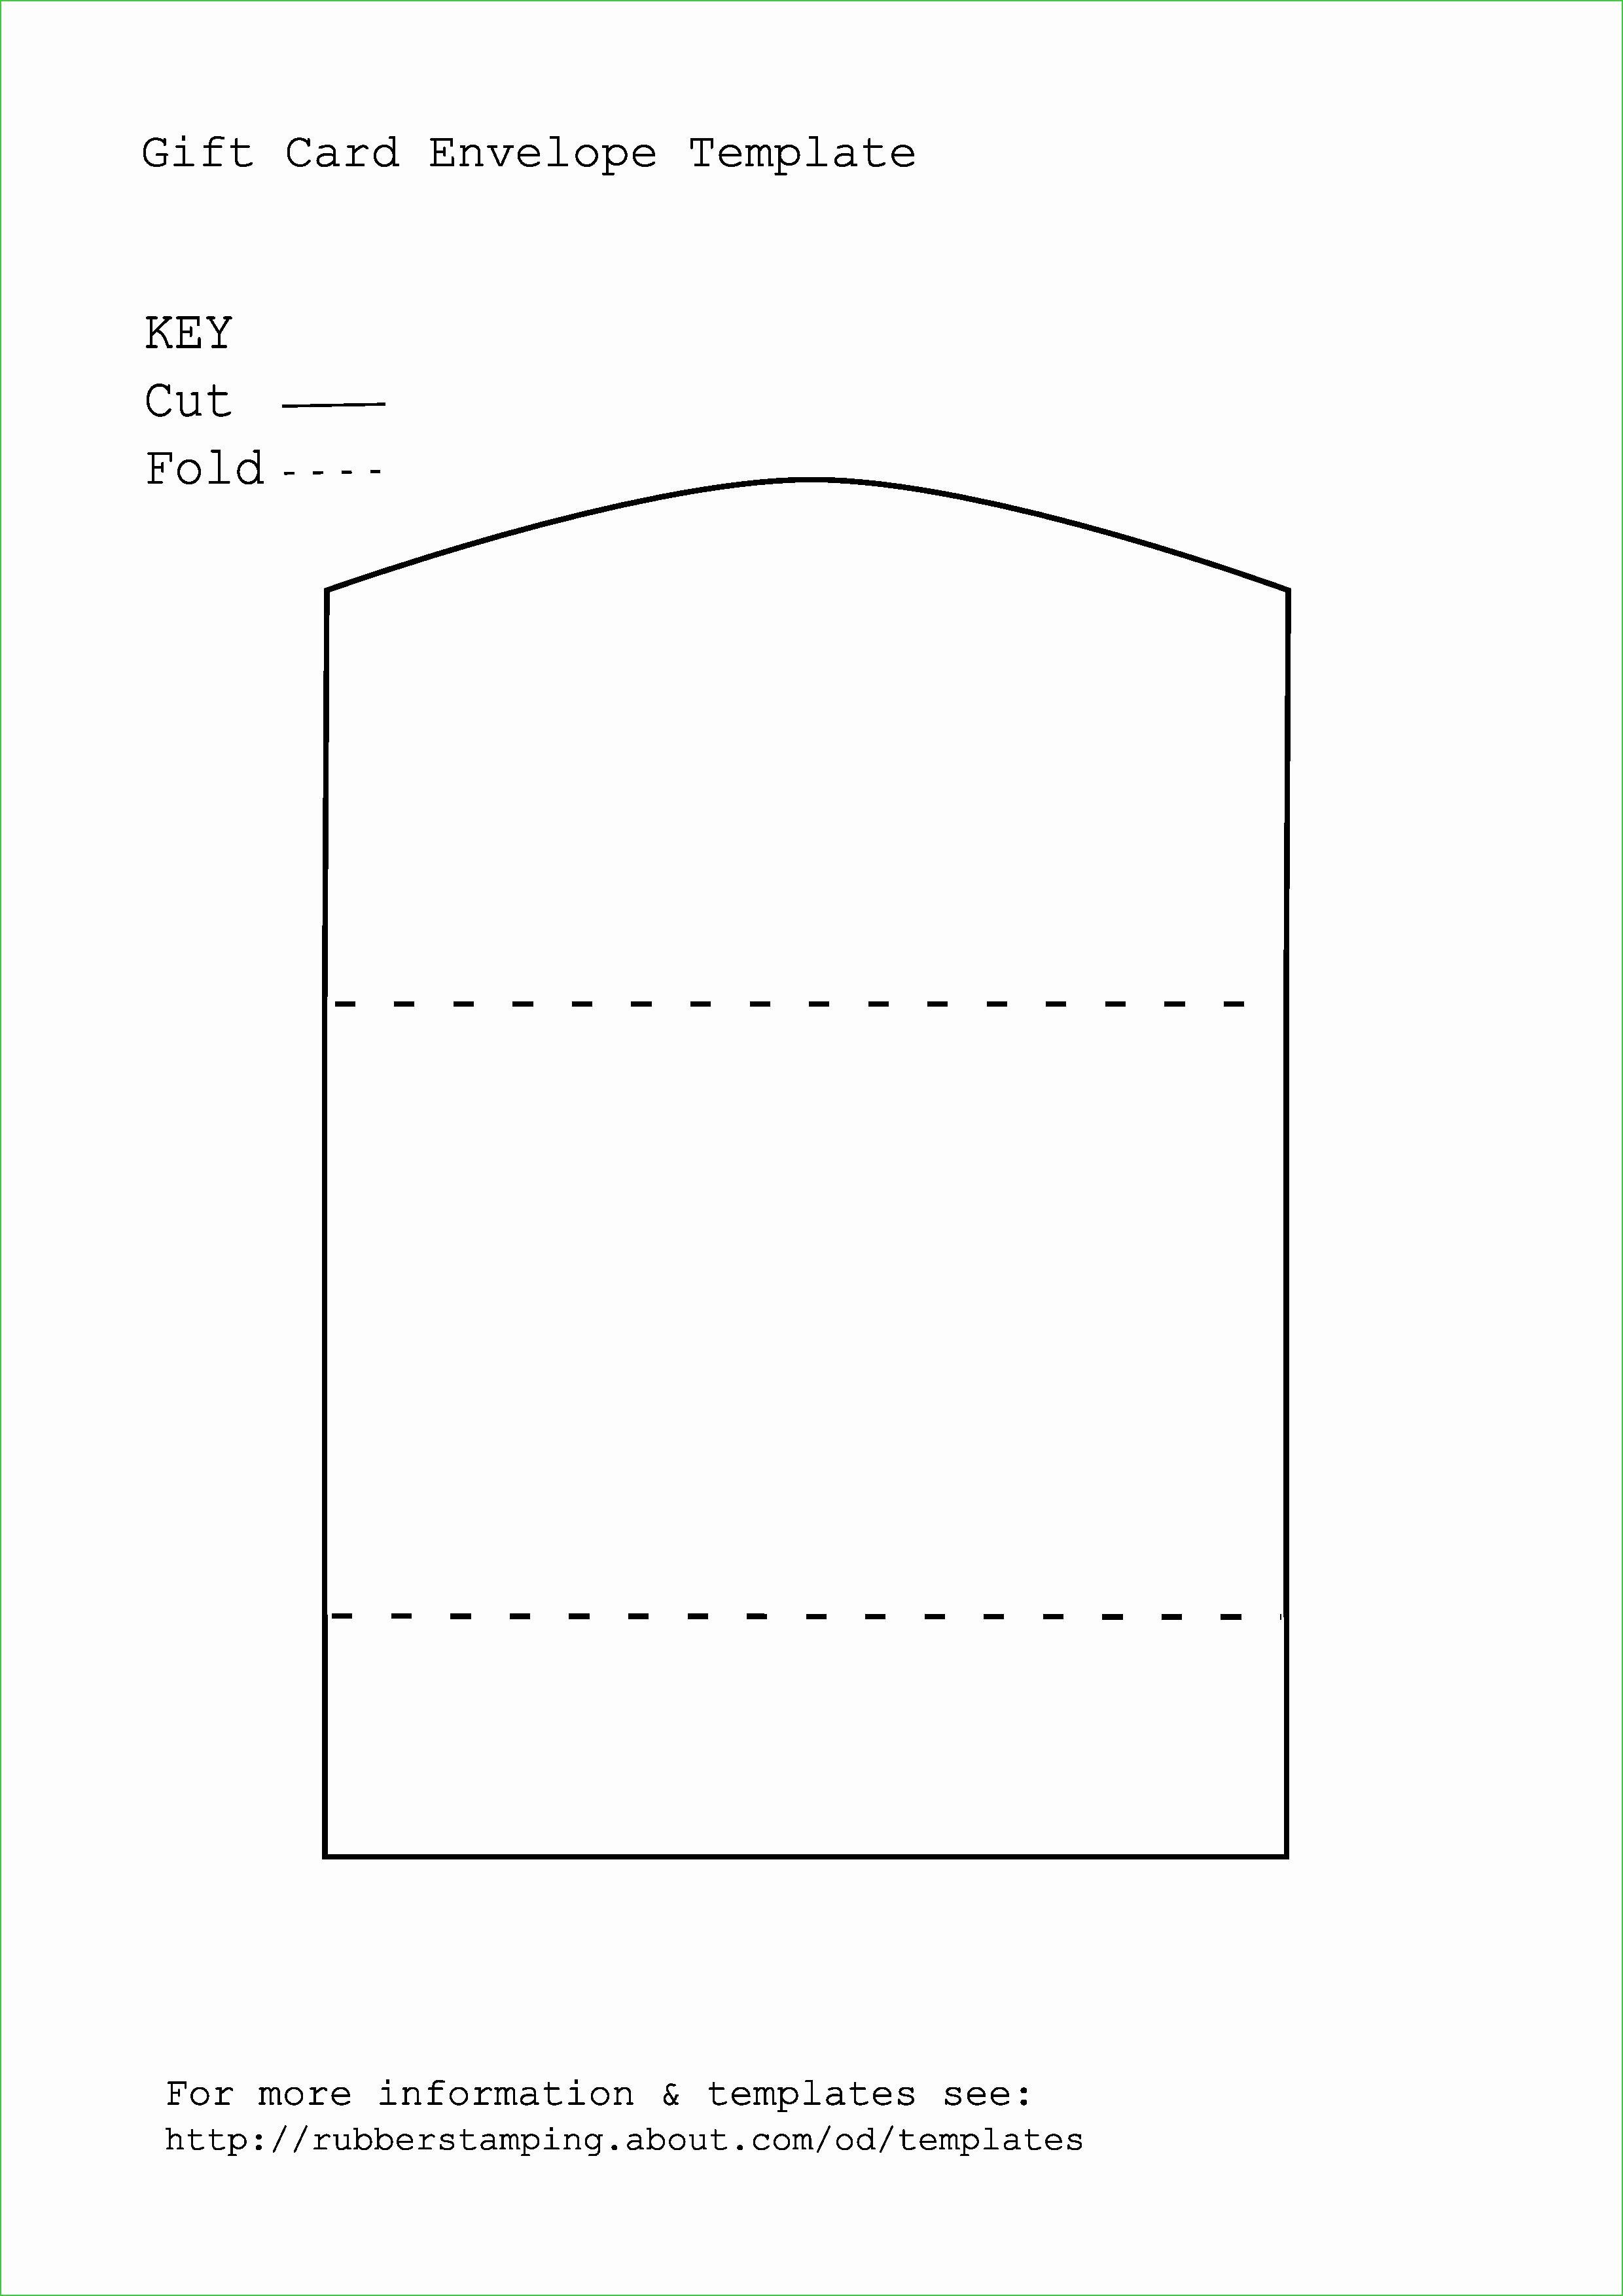 Cute Valentines Cards Luxury Clever Pop Up Card Templates Free Download Super Easy Valen Gift Card Envelope Template Envelope Template Templates Printable Free